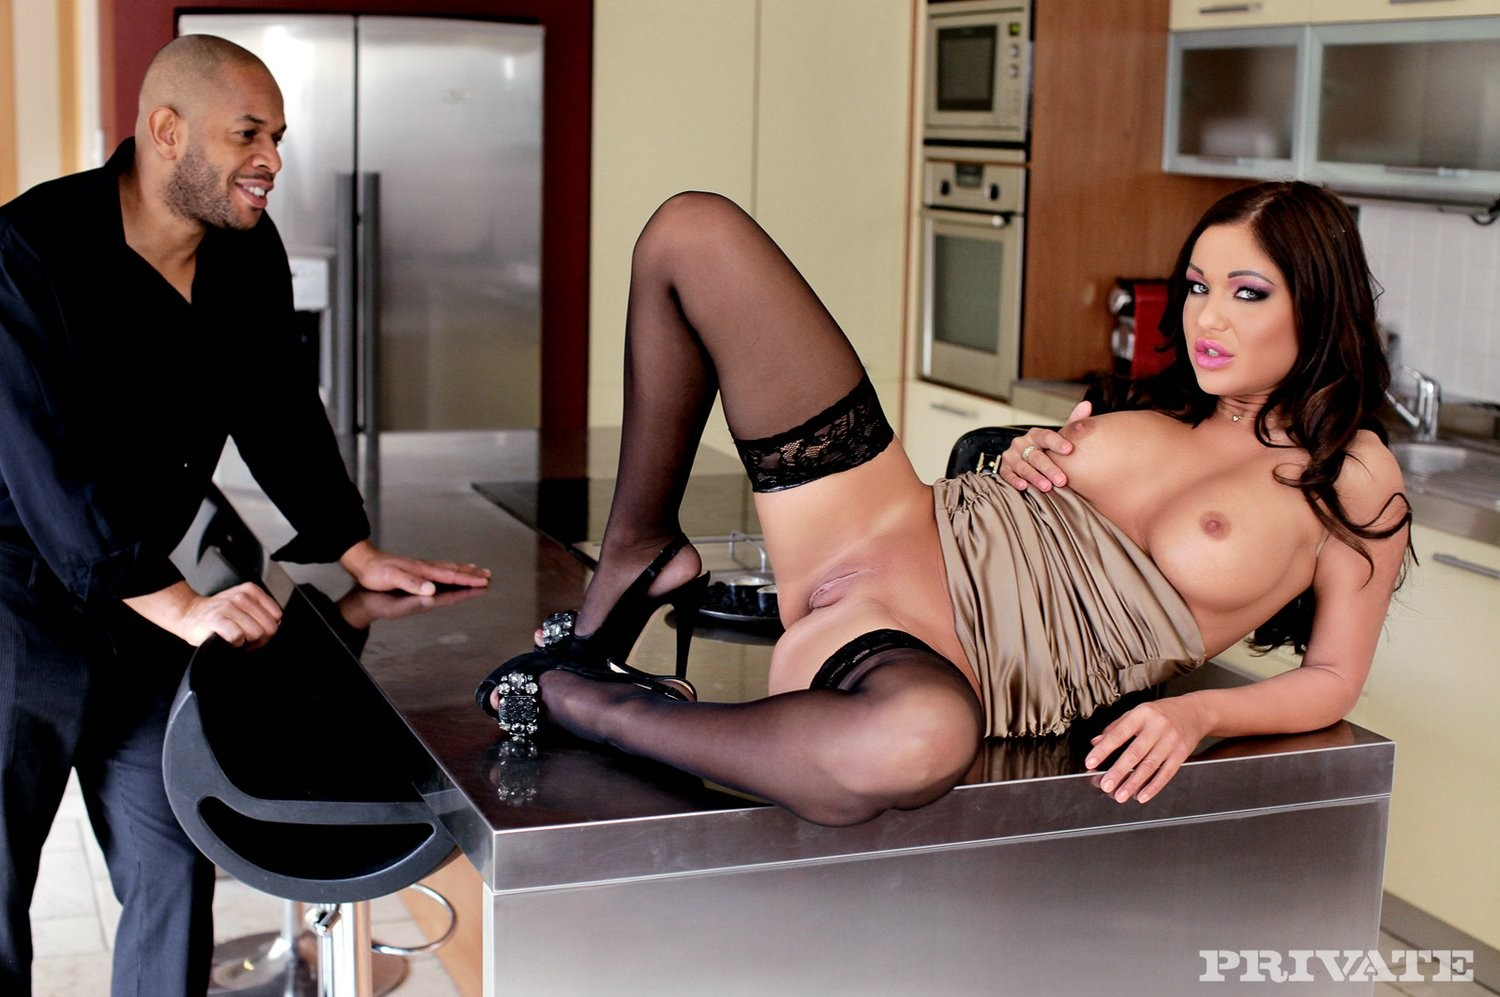 Appealing girl angelica heart takes cock right in her chocolate hole